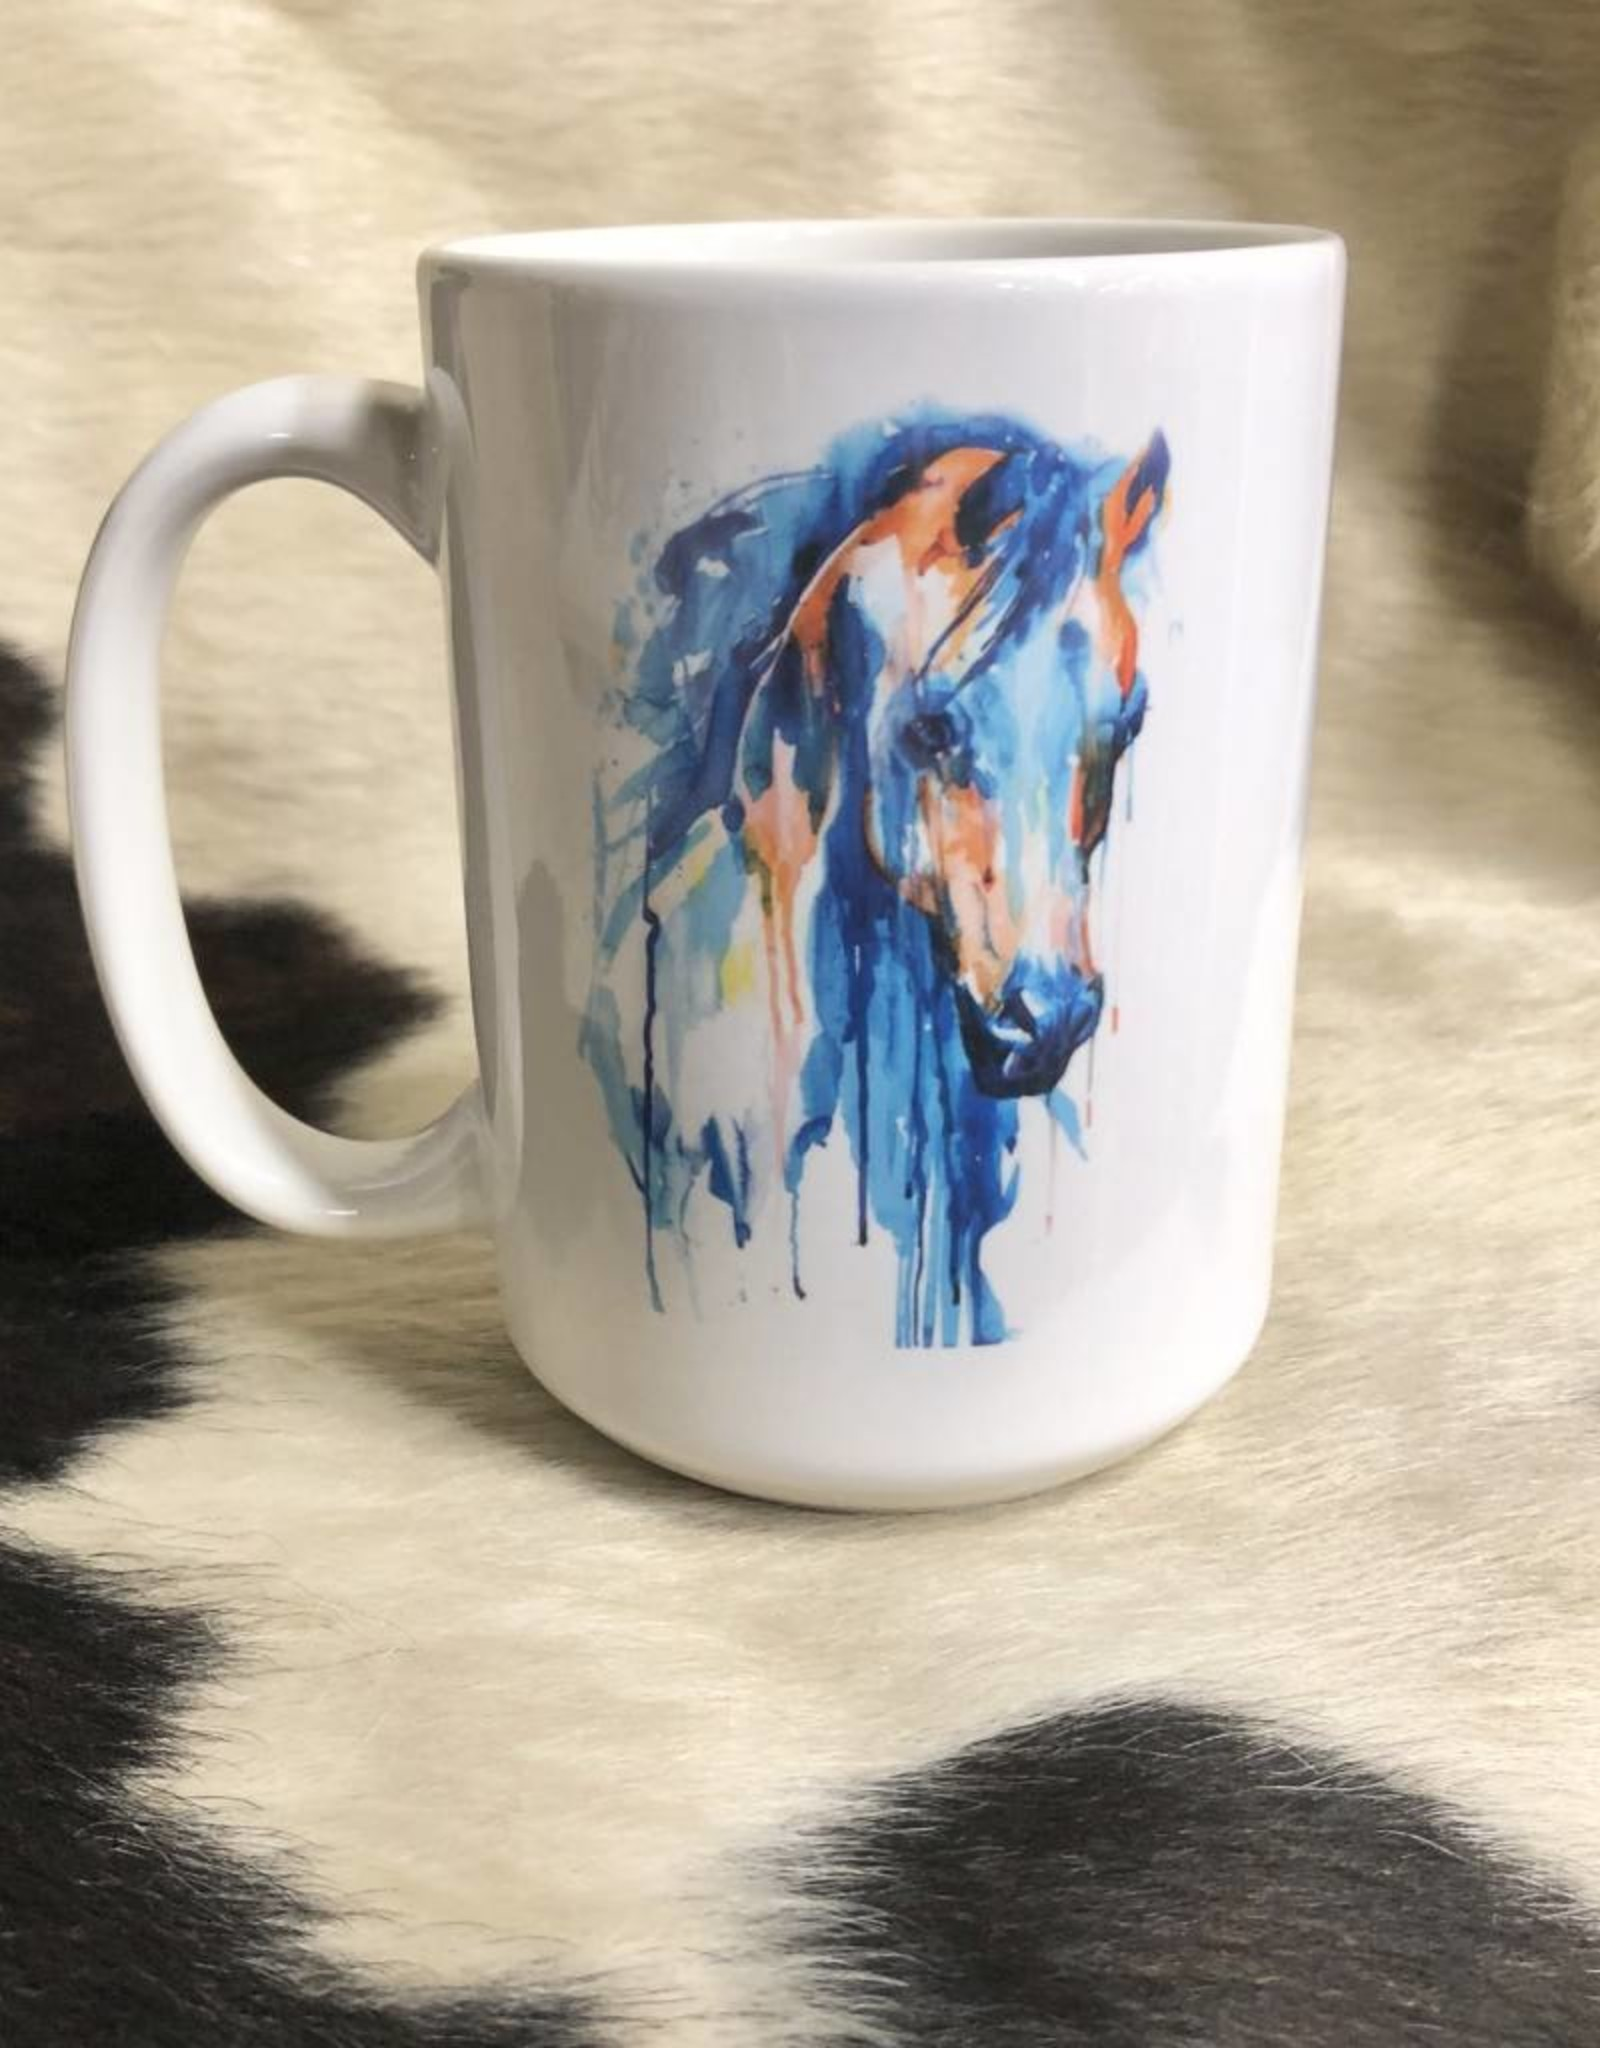 Coffee Mug Painted Horse Image On Both Sides Robinson S Family Feed